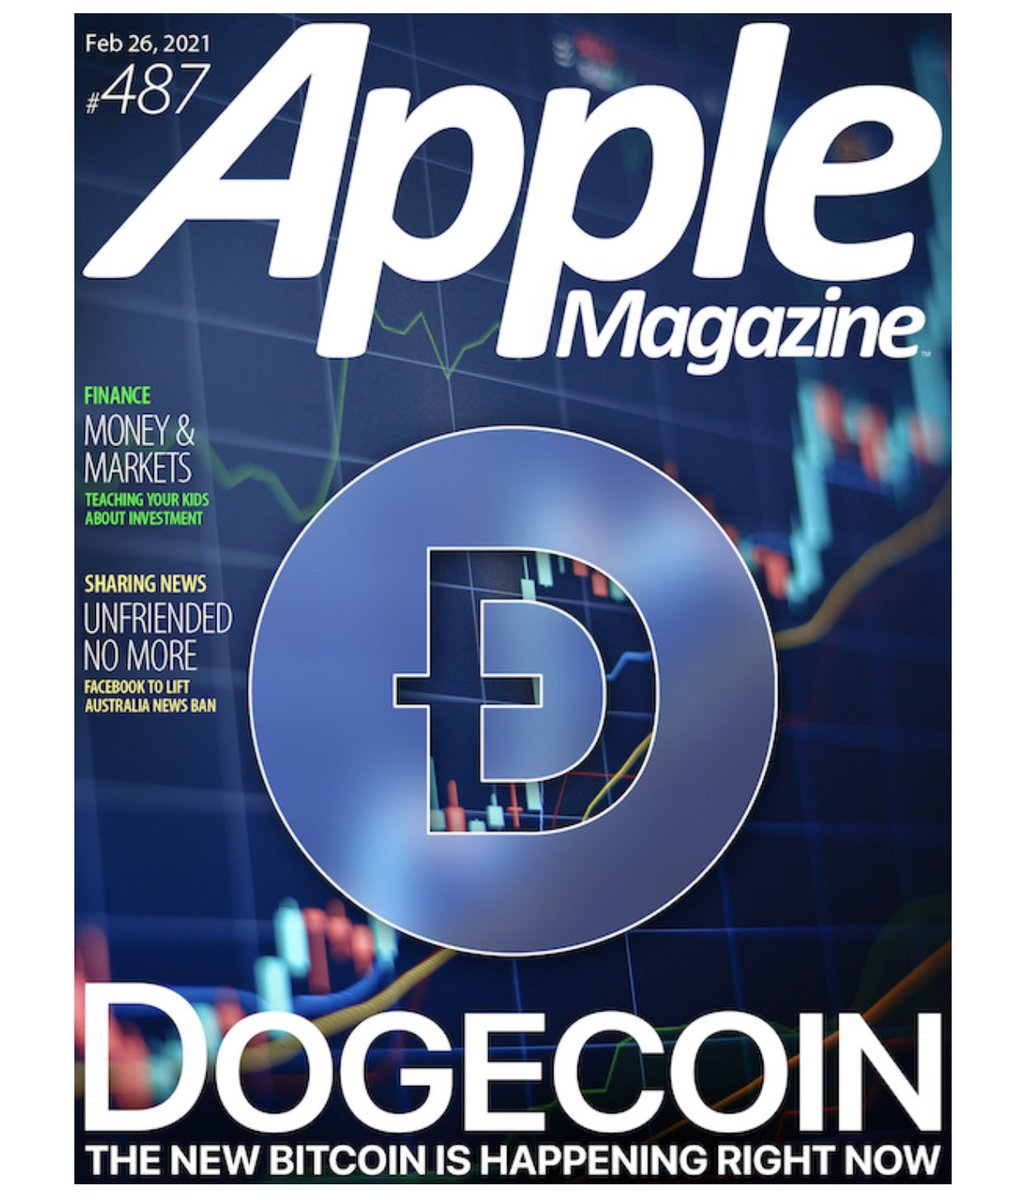 Verified. Spread the word. Steal these pictures. Make your own tweets, retweets or replies.. We don't care. Spread. The. Word. Change your D to Ð.  #Ðogecoin #Dogecoin #Ðogearmy #Dogearmy #Ðoge #Doge @elonmusk @Apple